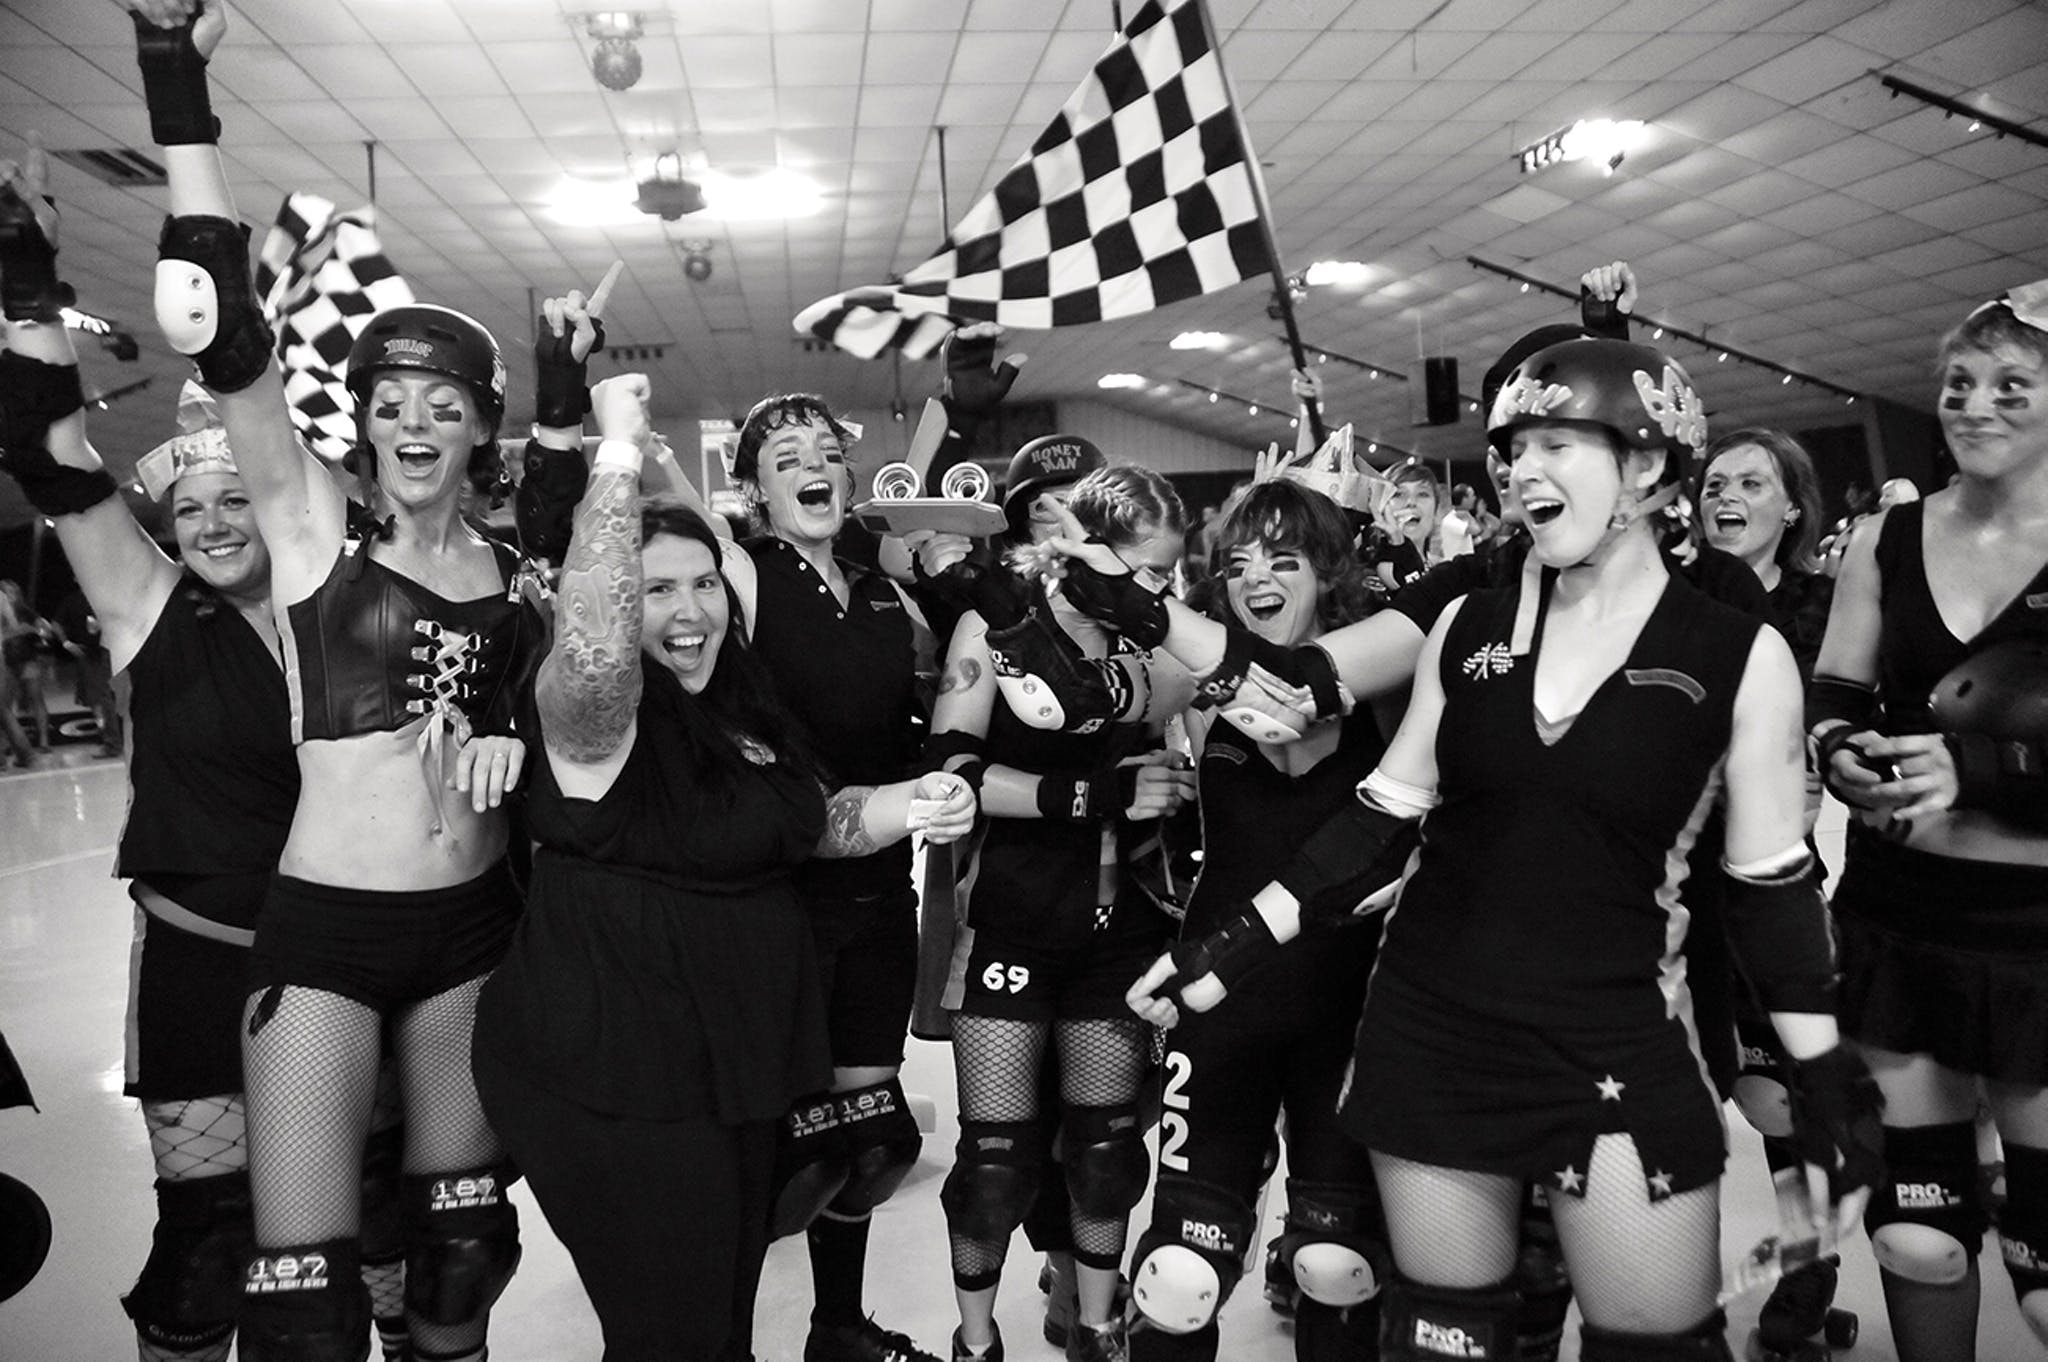 Texas Rollergirls team the Hot Rods celebrate after winning the 2009 Austin championship